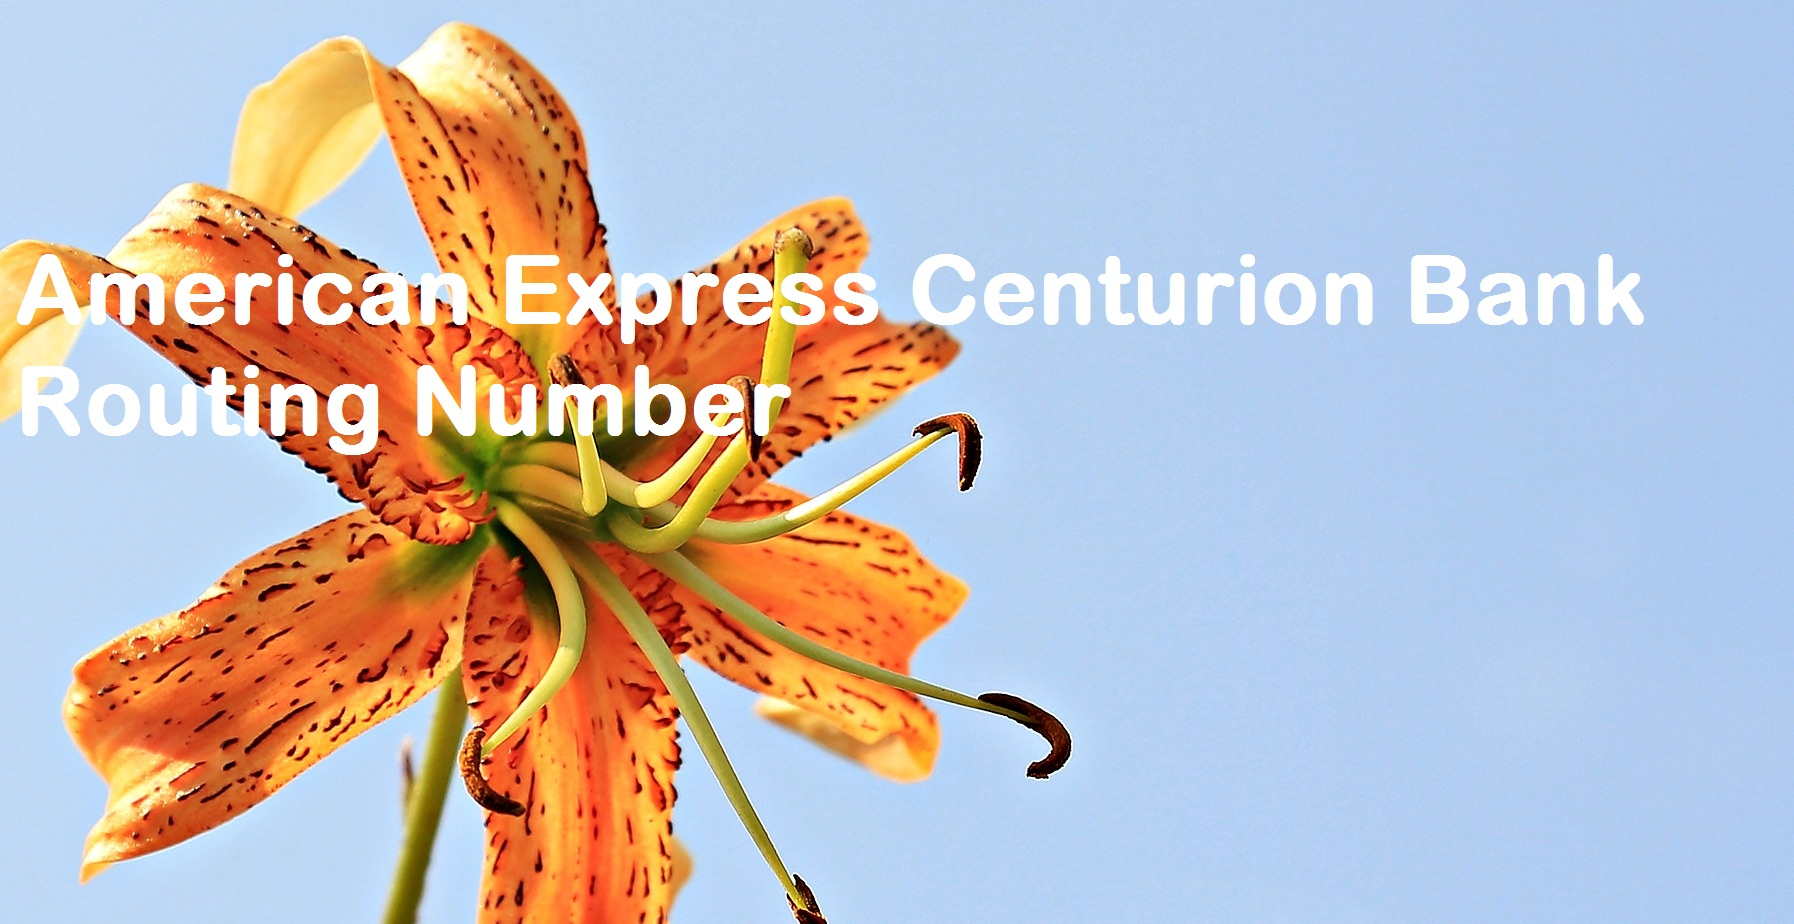 American Express Centurion Bank Routing Number